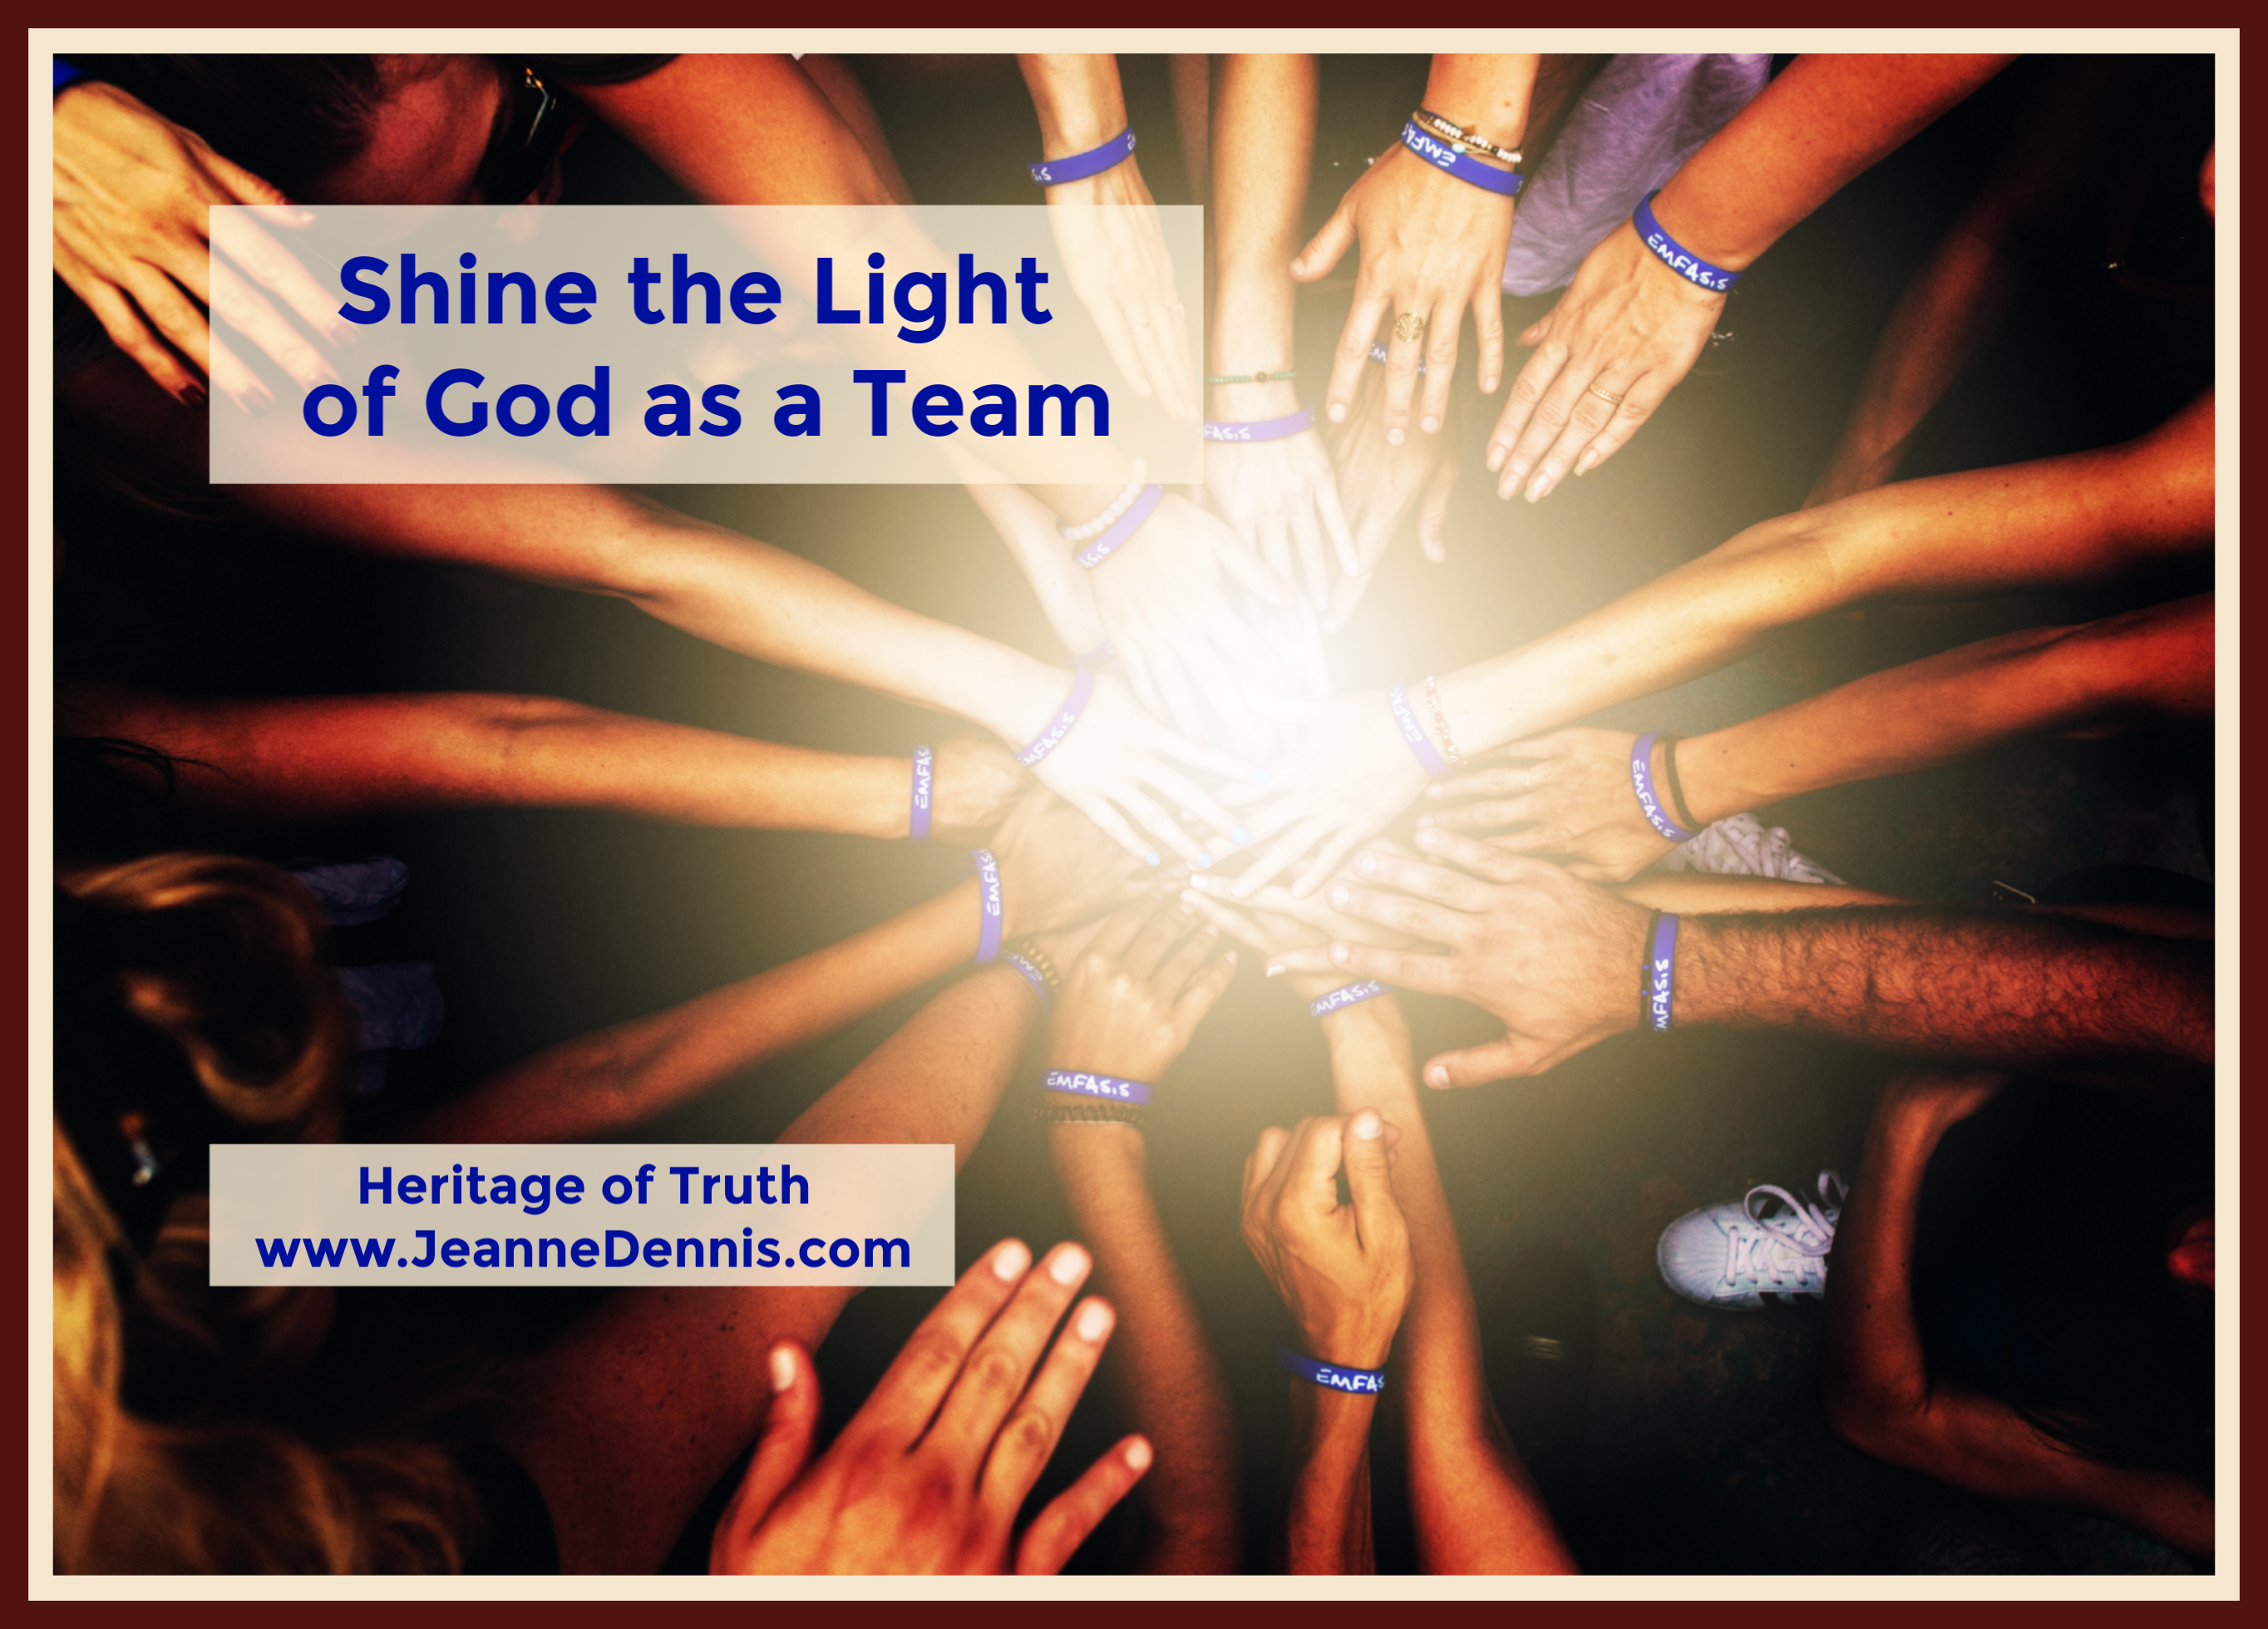 Hands joined - Shine the Light of God as a Team, Heritage of Truth, www.JeanneDennis.com